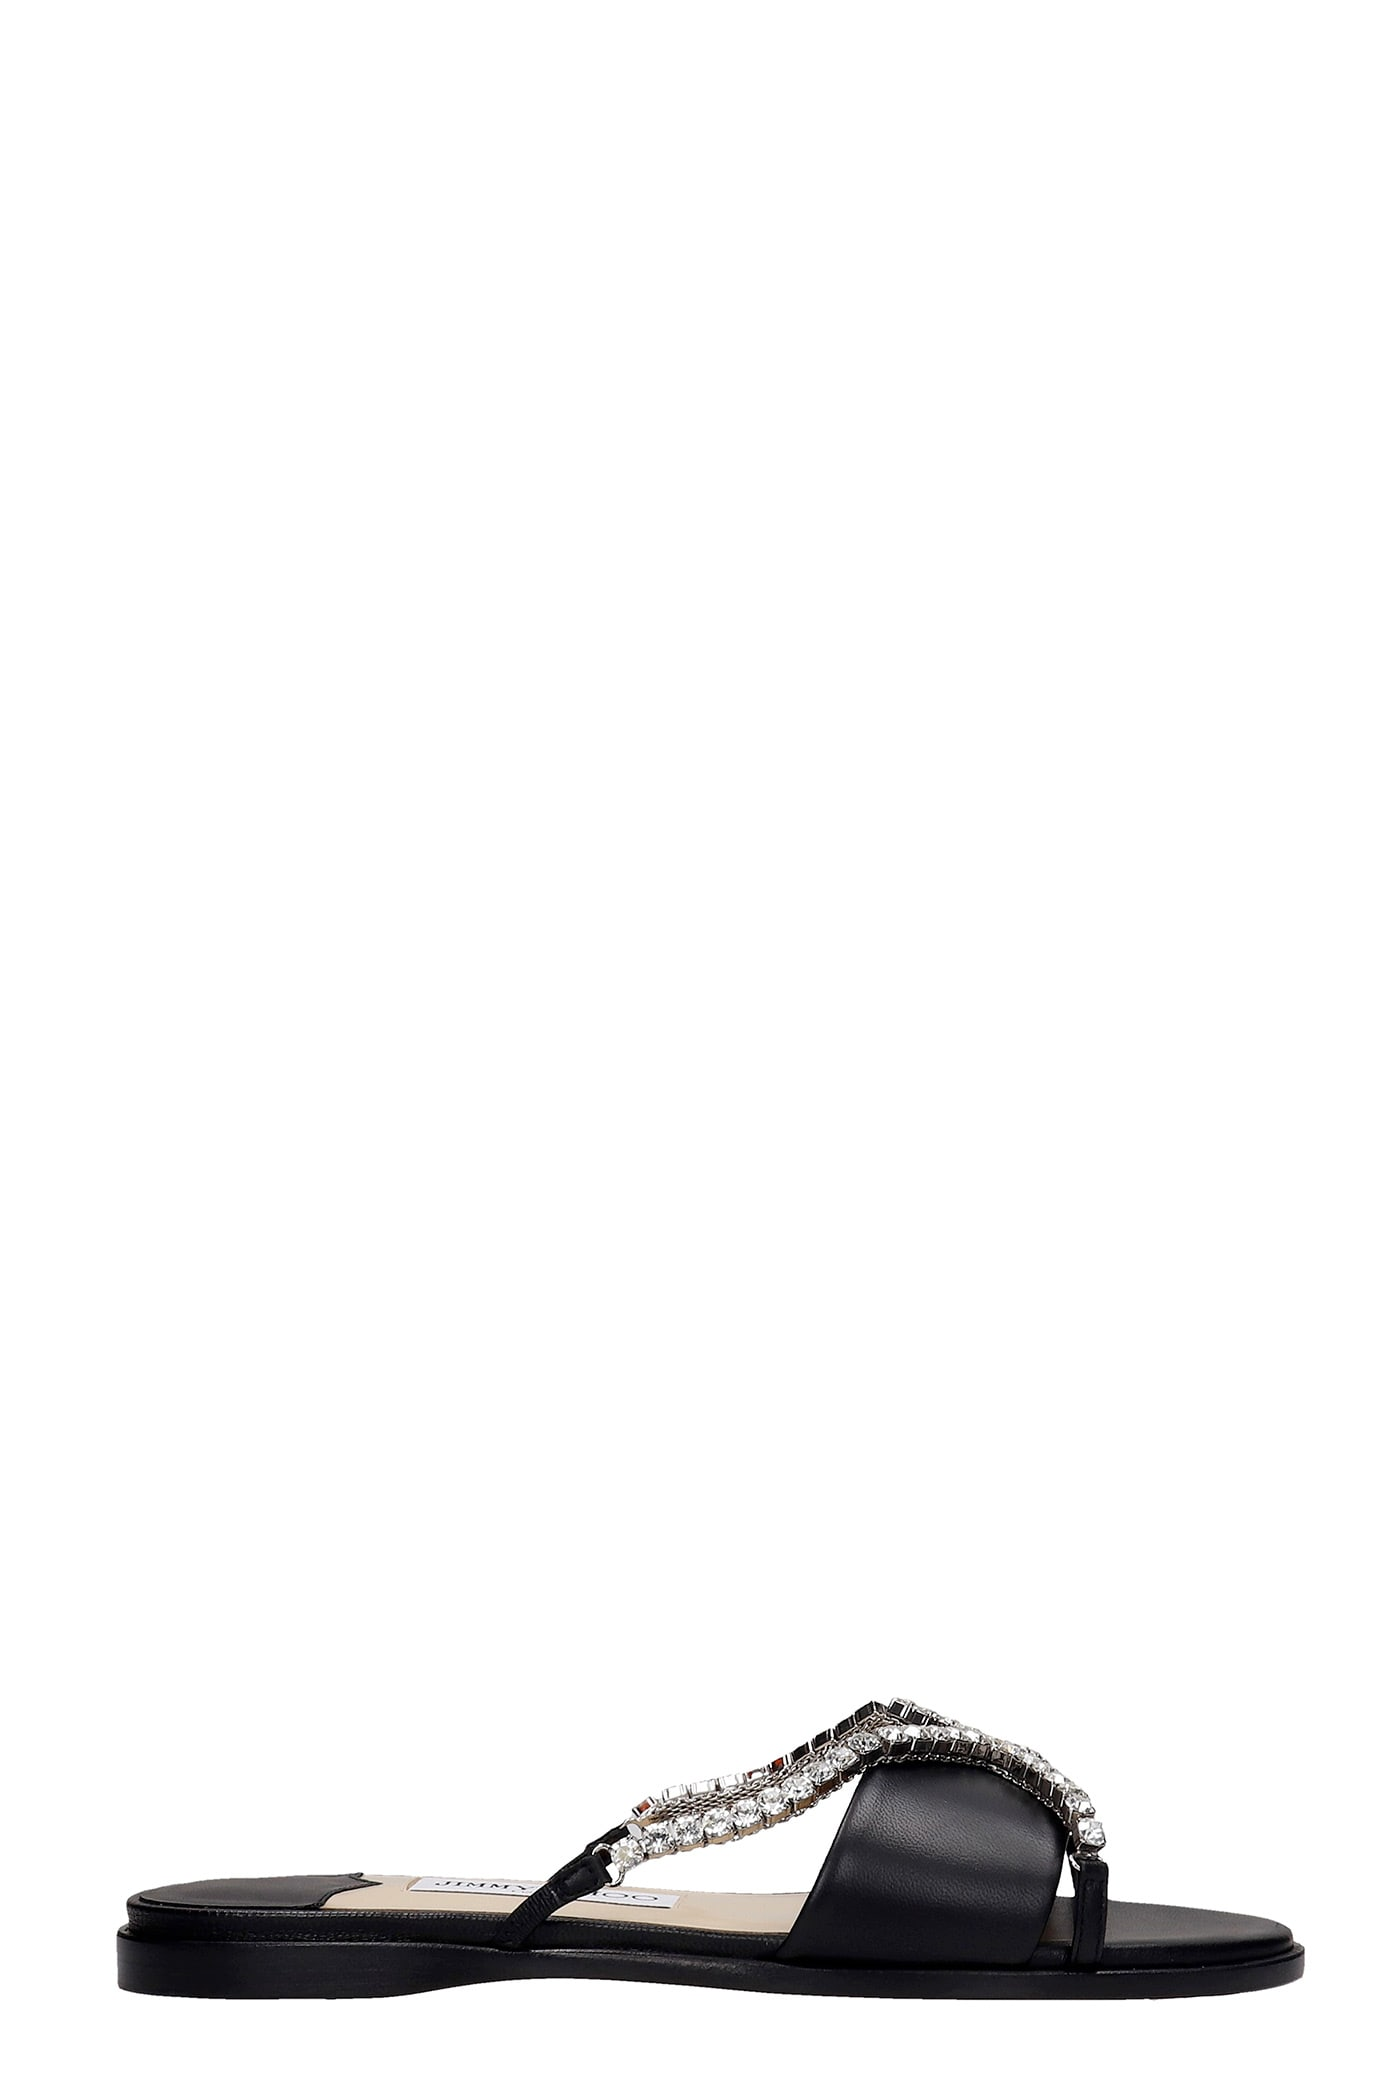 Buy Jimmy Choo Aadi Flat Flats In Black Patent Leather online, shop Jimmy Choo shoes with free shipping